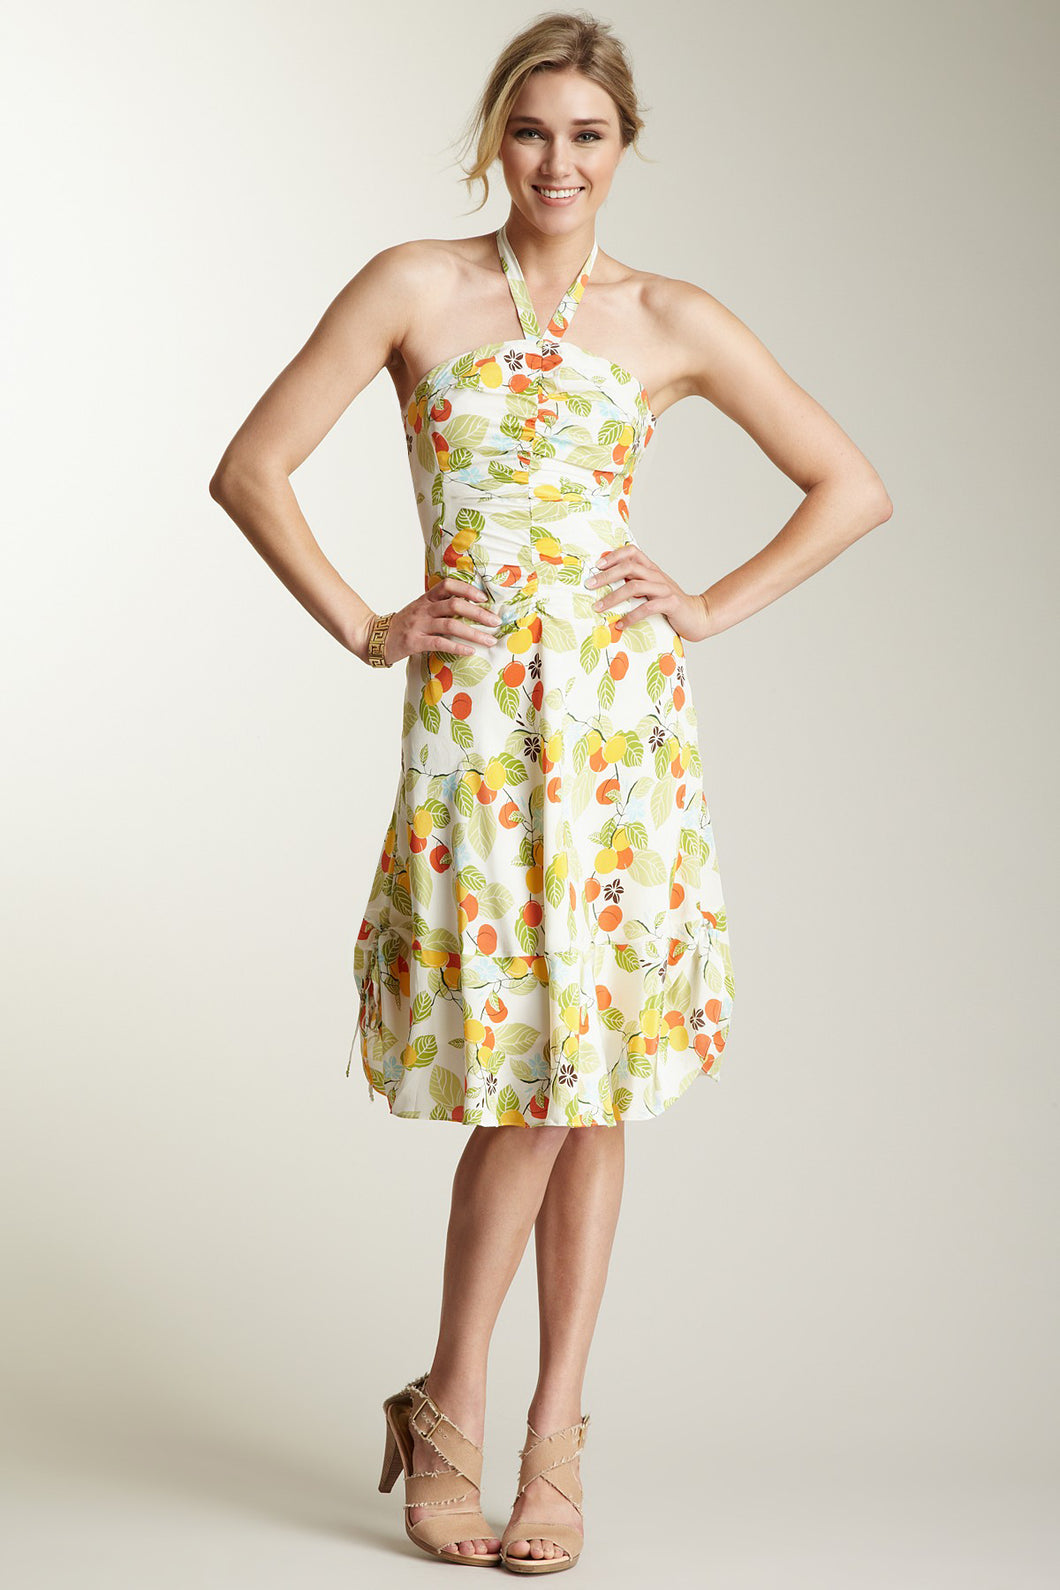 Silk Rouched Strapless Dress - Fruit Print